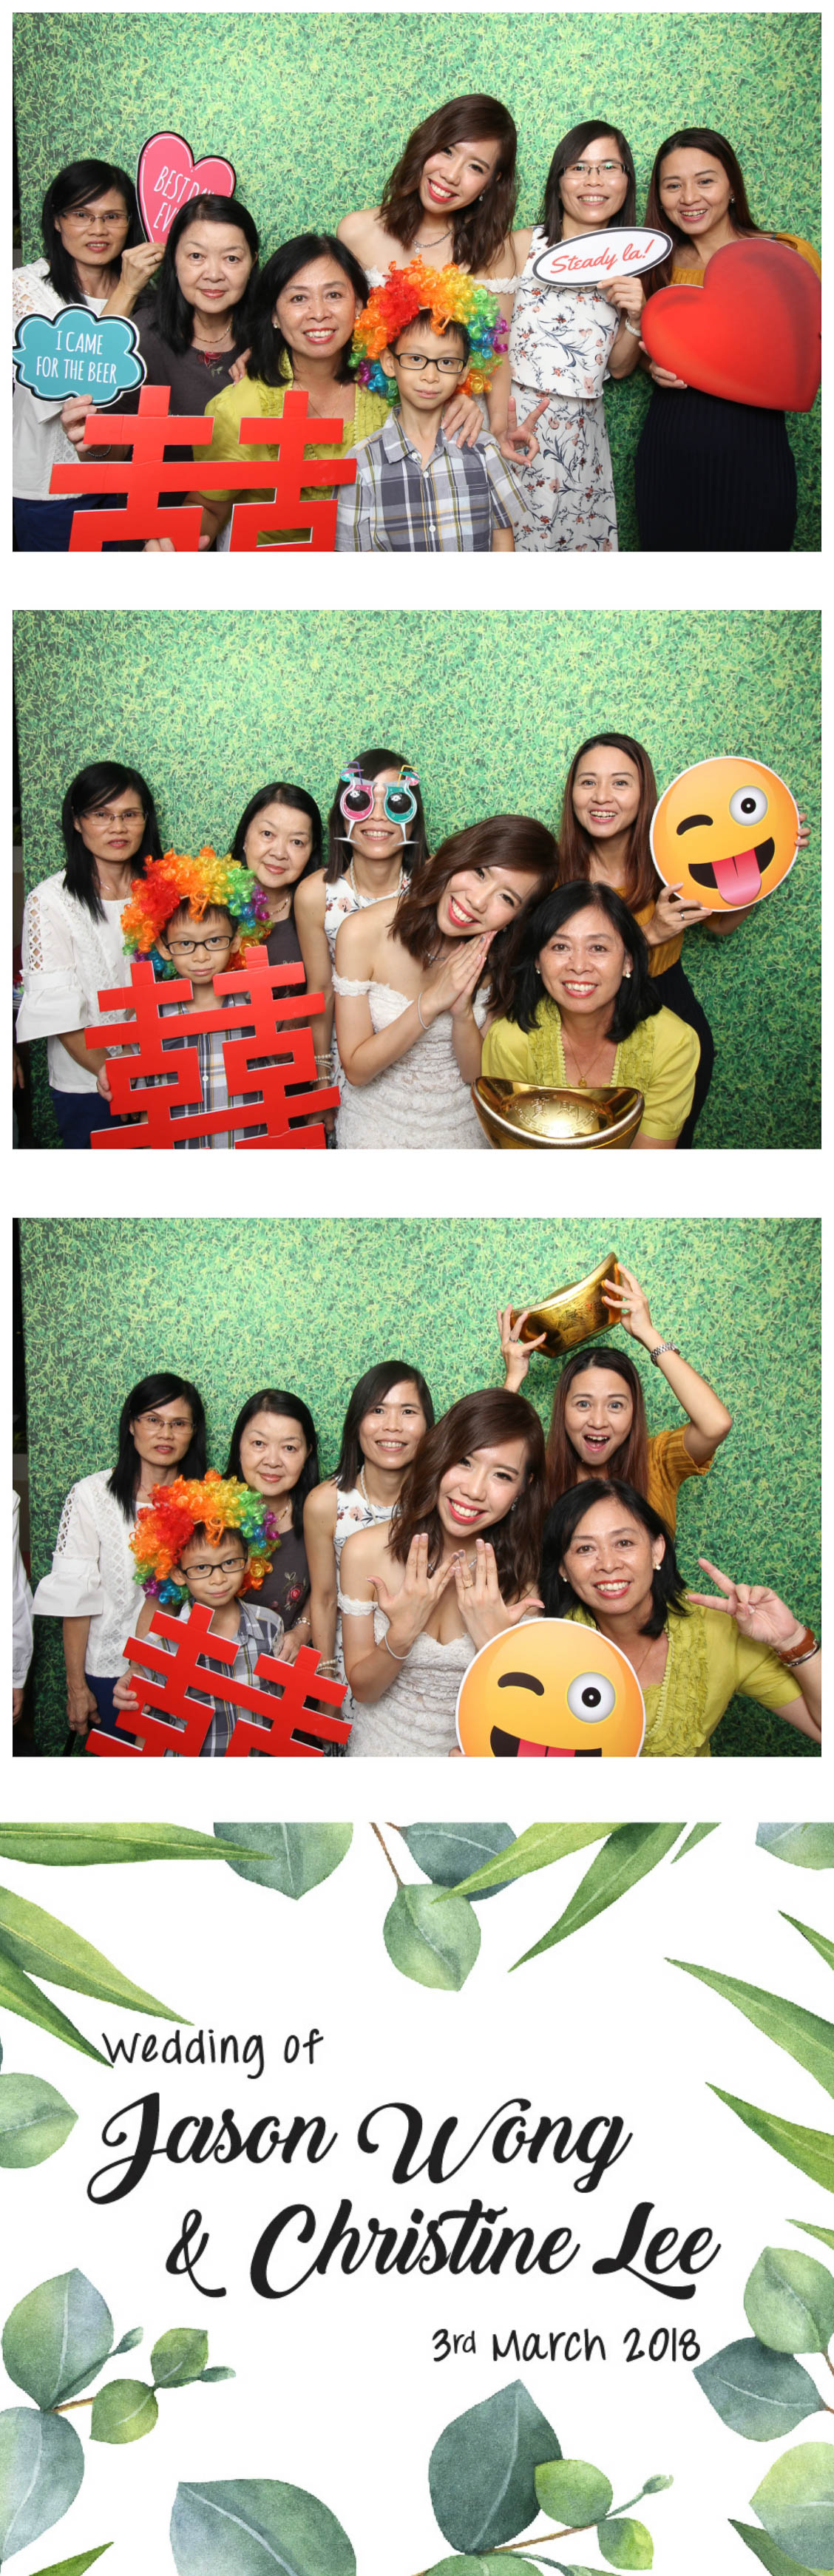 Photobooth 0302-28